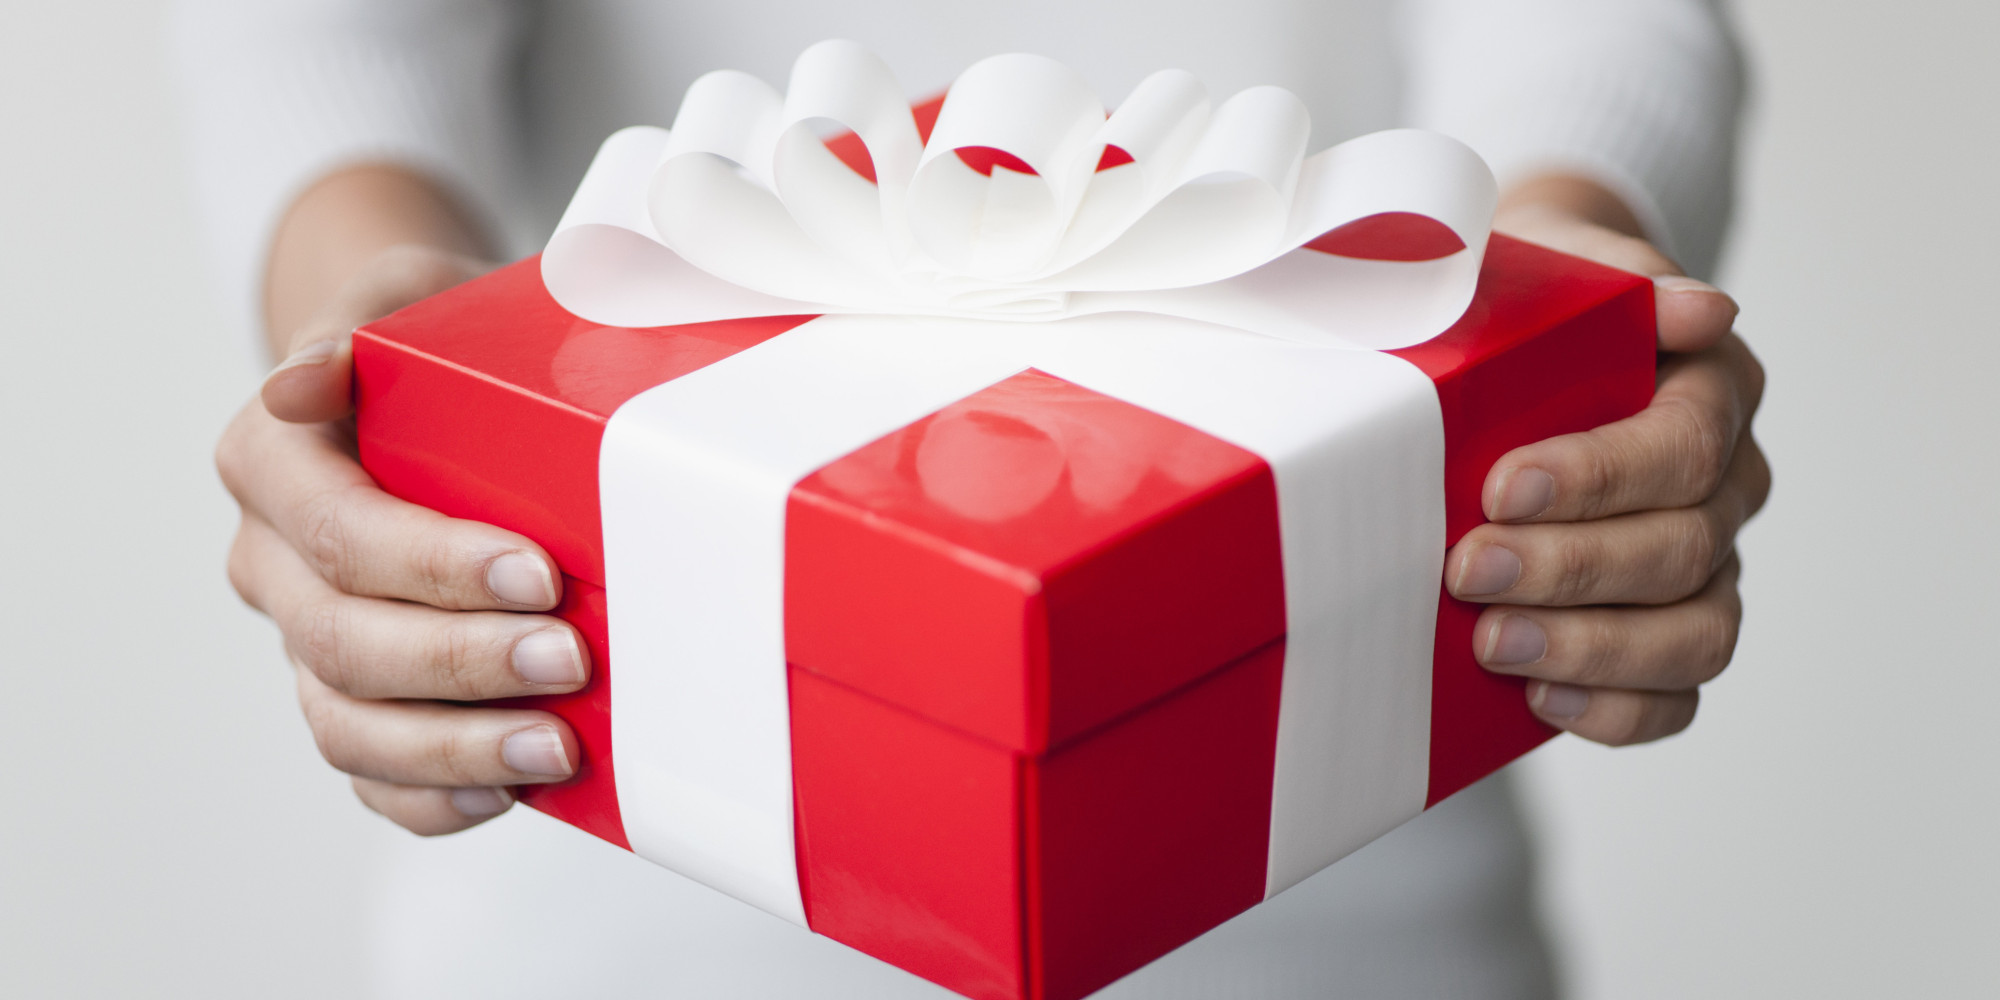 Gift under GST: What is and isn't taxable - Vakilsearch